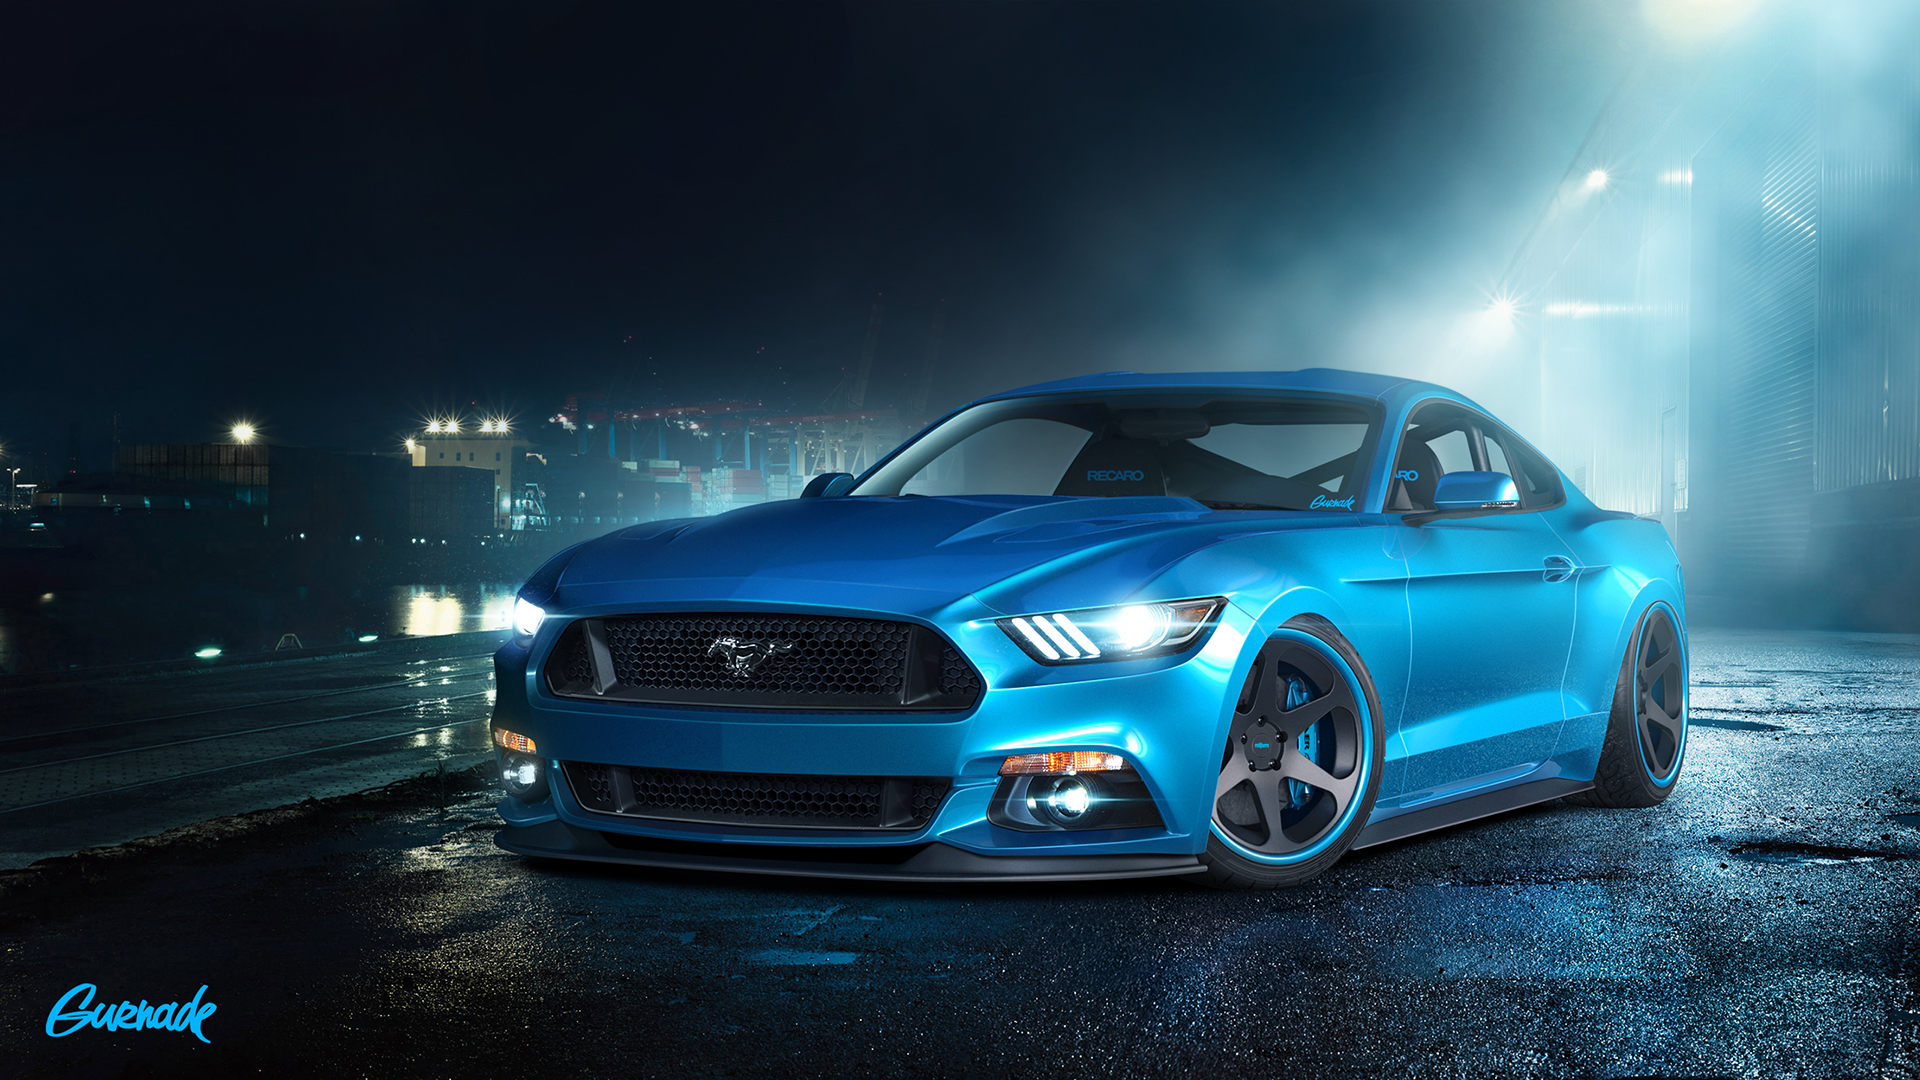 2015 ford mustang gt wallpaper | hd car wallpapers | id #4974